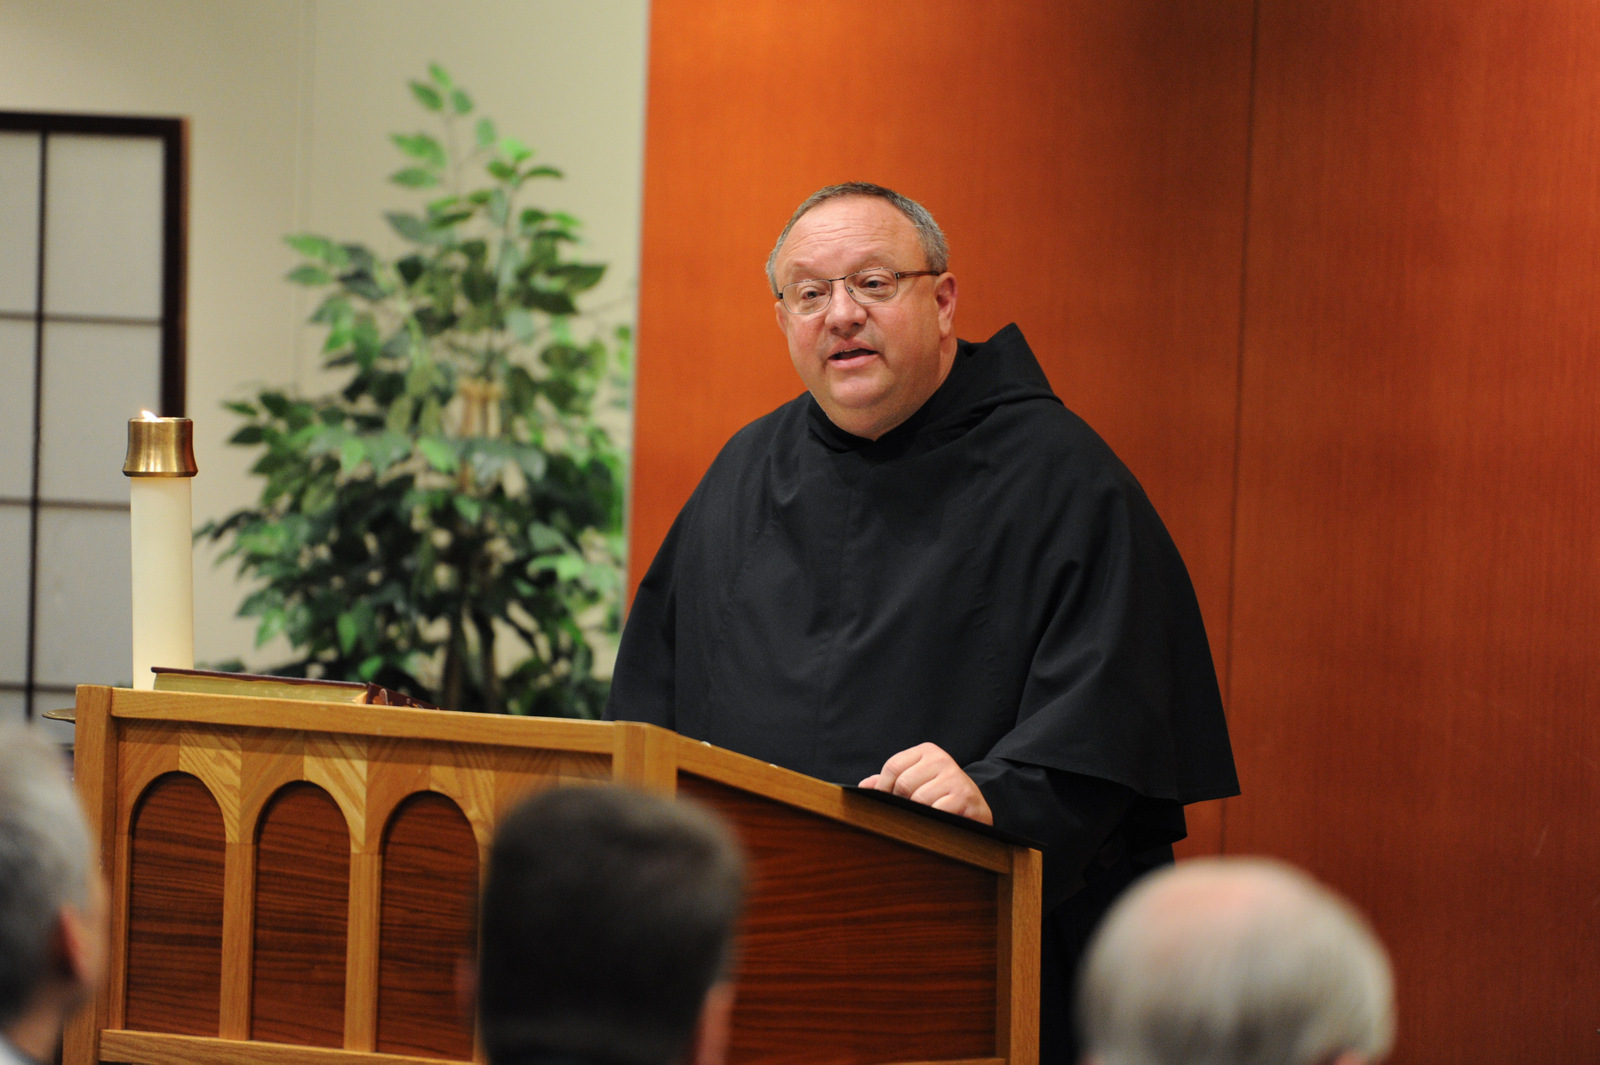 The Very Rev. Bernard C. Scianna, O.S.A., Ph.D., began his second term as Prior Provincial of the Midwest Augustinians on June 11, 2014